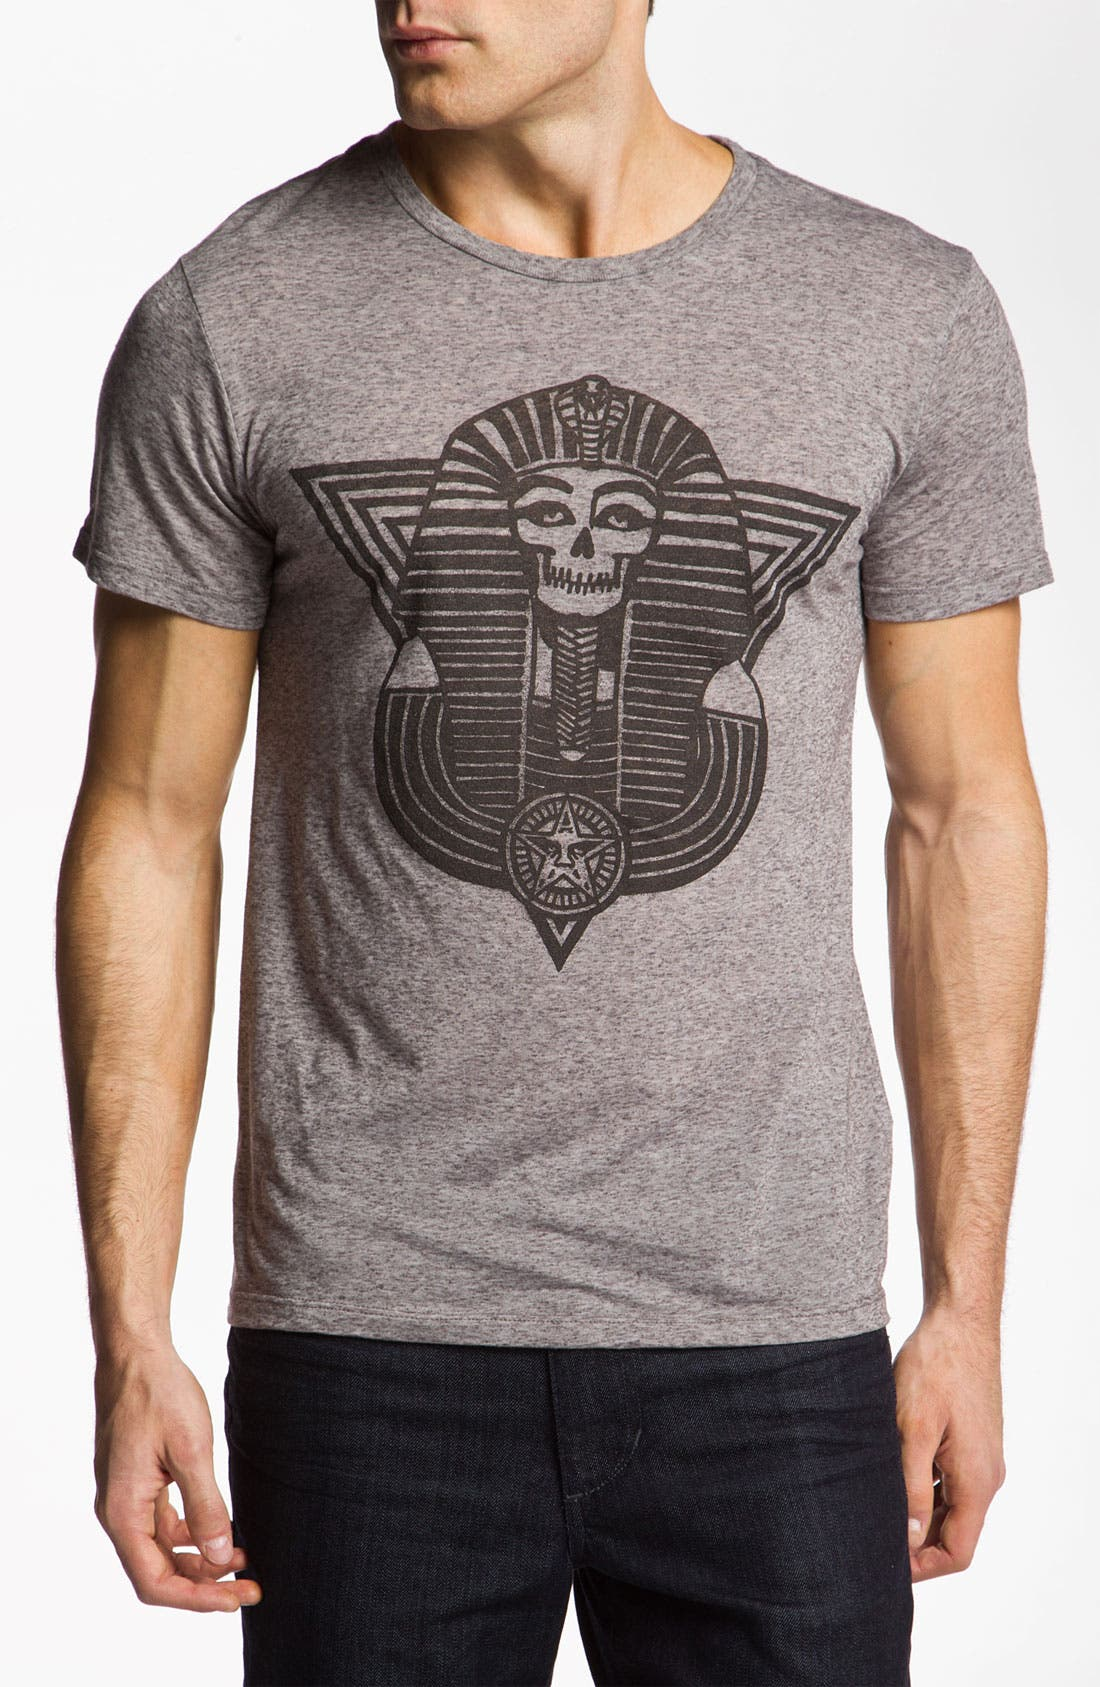 Alternate Image 1 Selected - Obey 'New Kingdom' Graphic T-Shirt